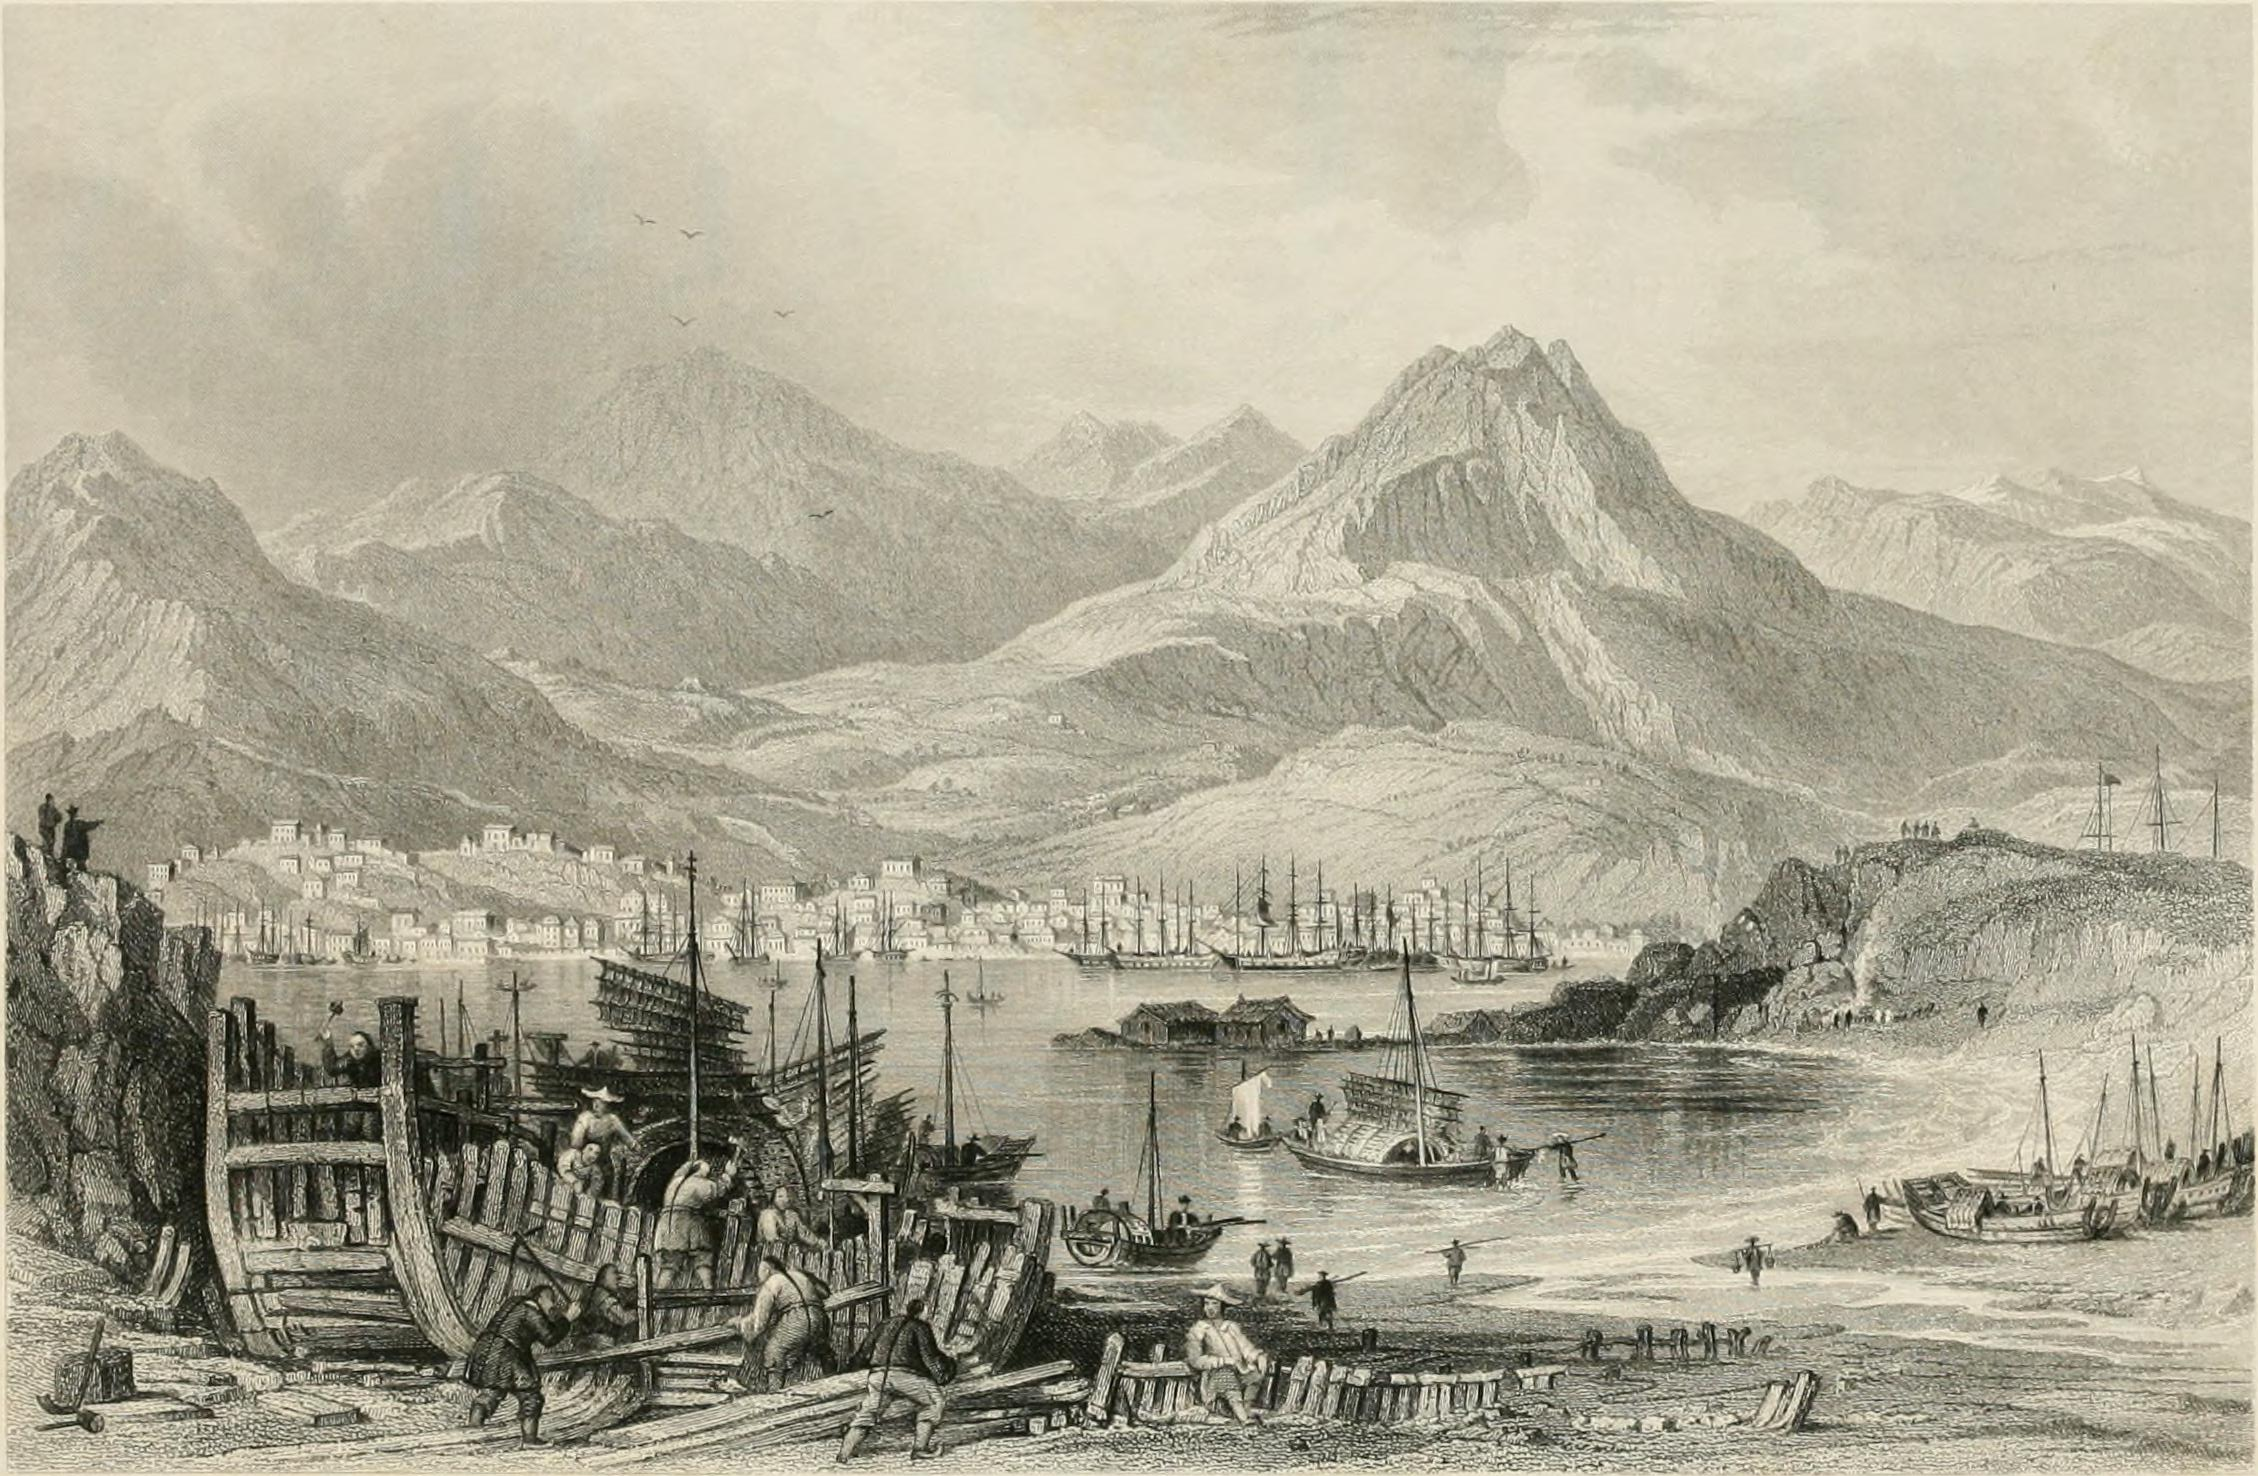 Engraving of Hong Kong Island